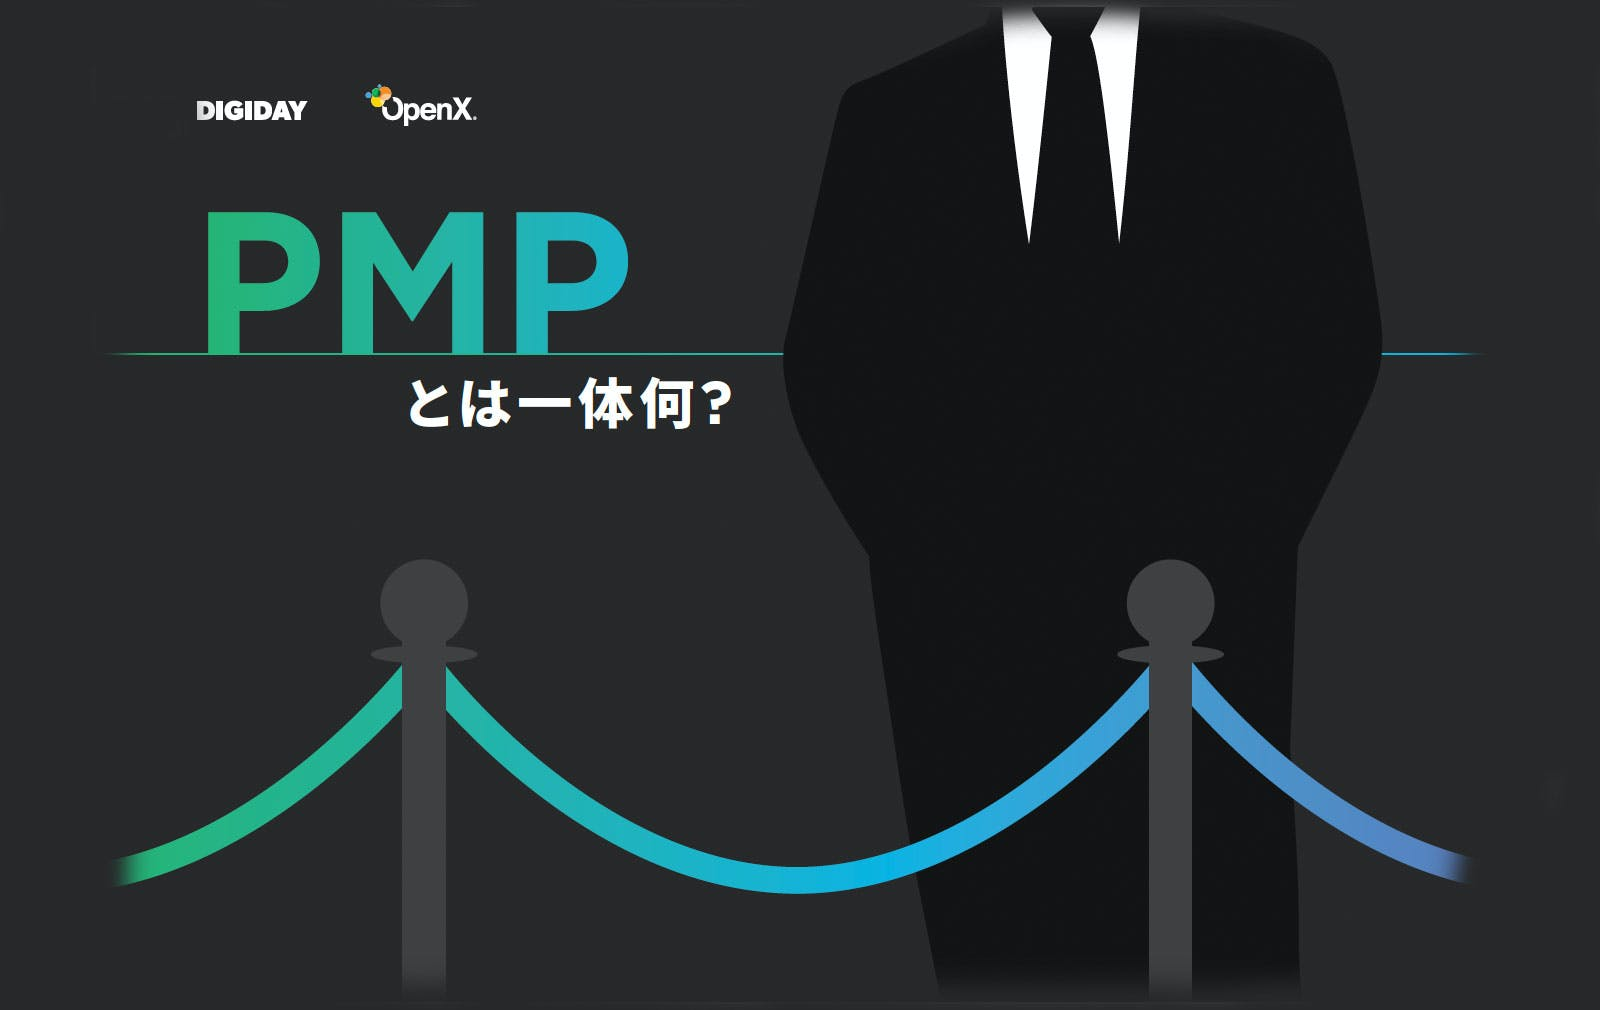 WTF PMP JP FeatImg - OpenX リソースの概要